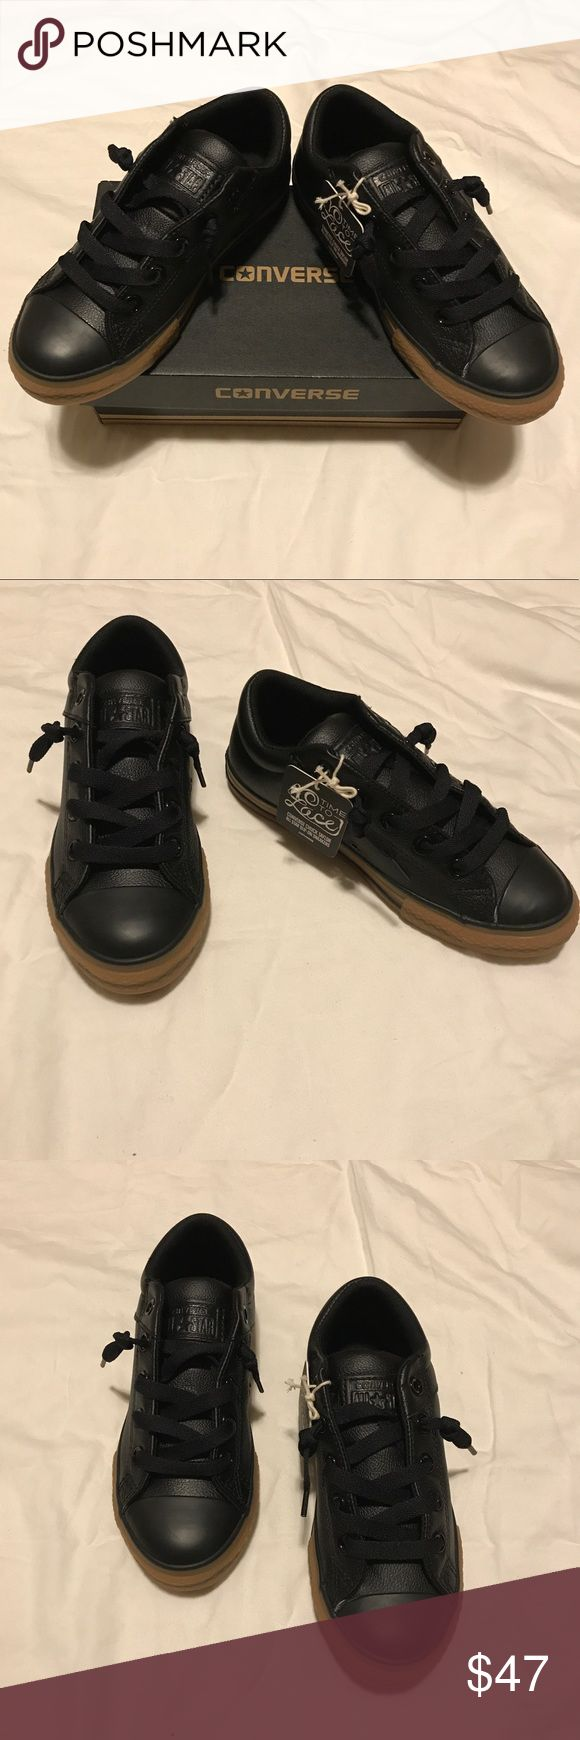 Converse slip on no time to lace sneakers Converse slip on no time to lace sneakers. Black faux Leather Converse Shoes Sneakers